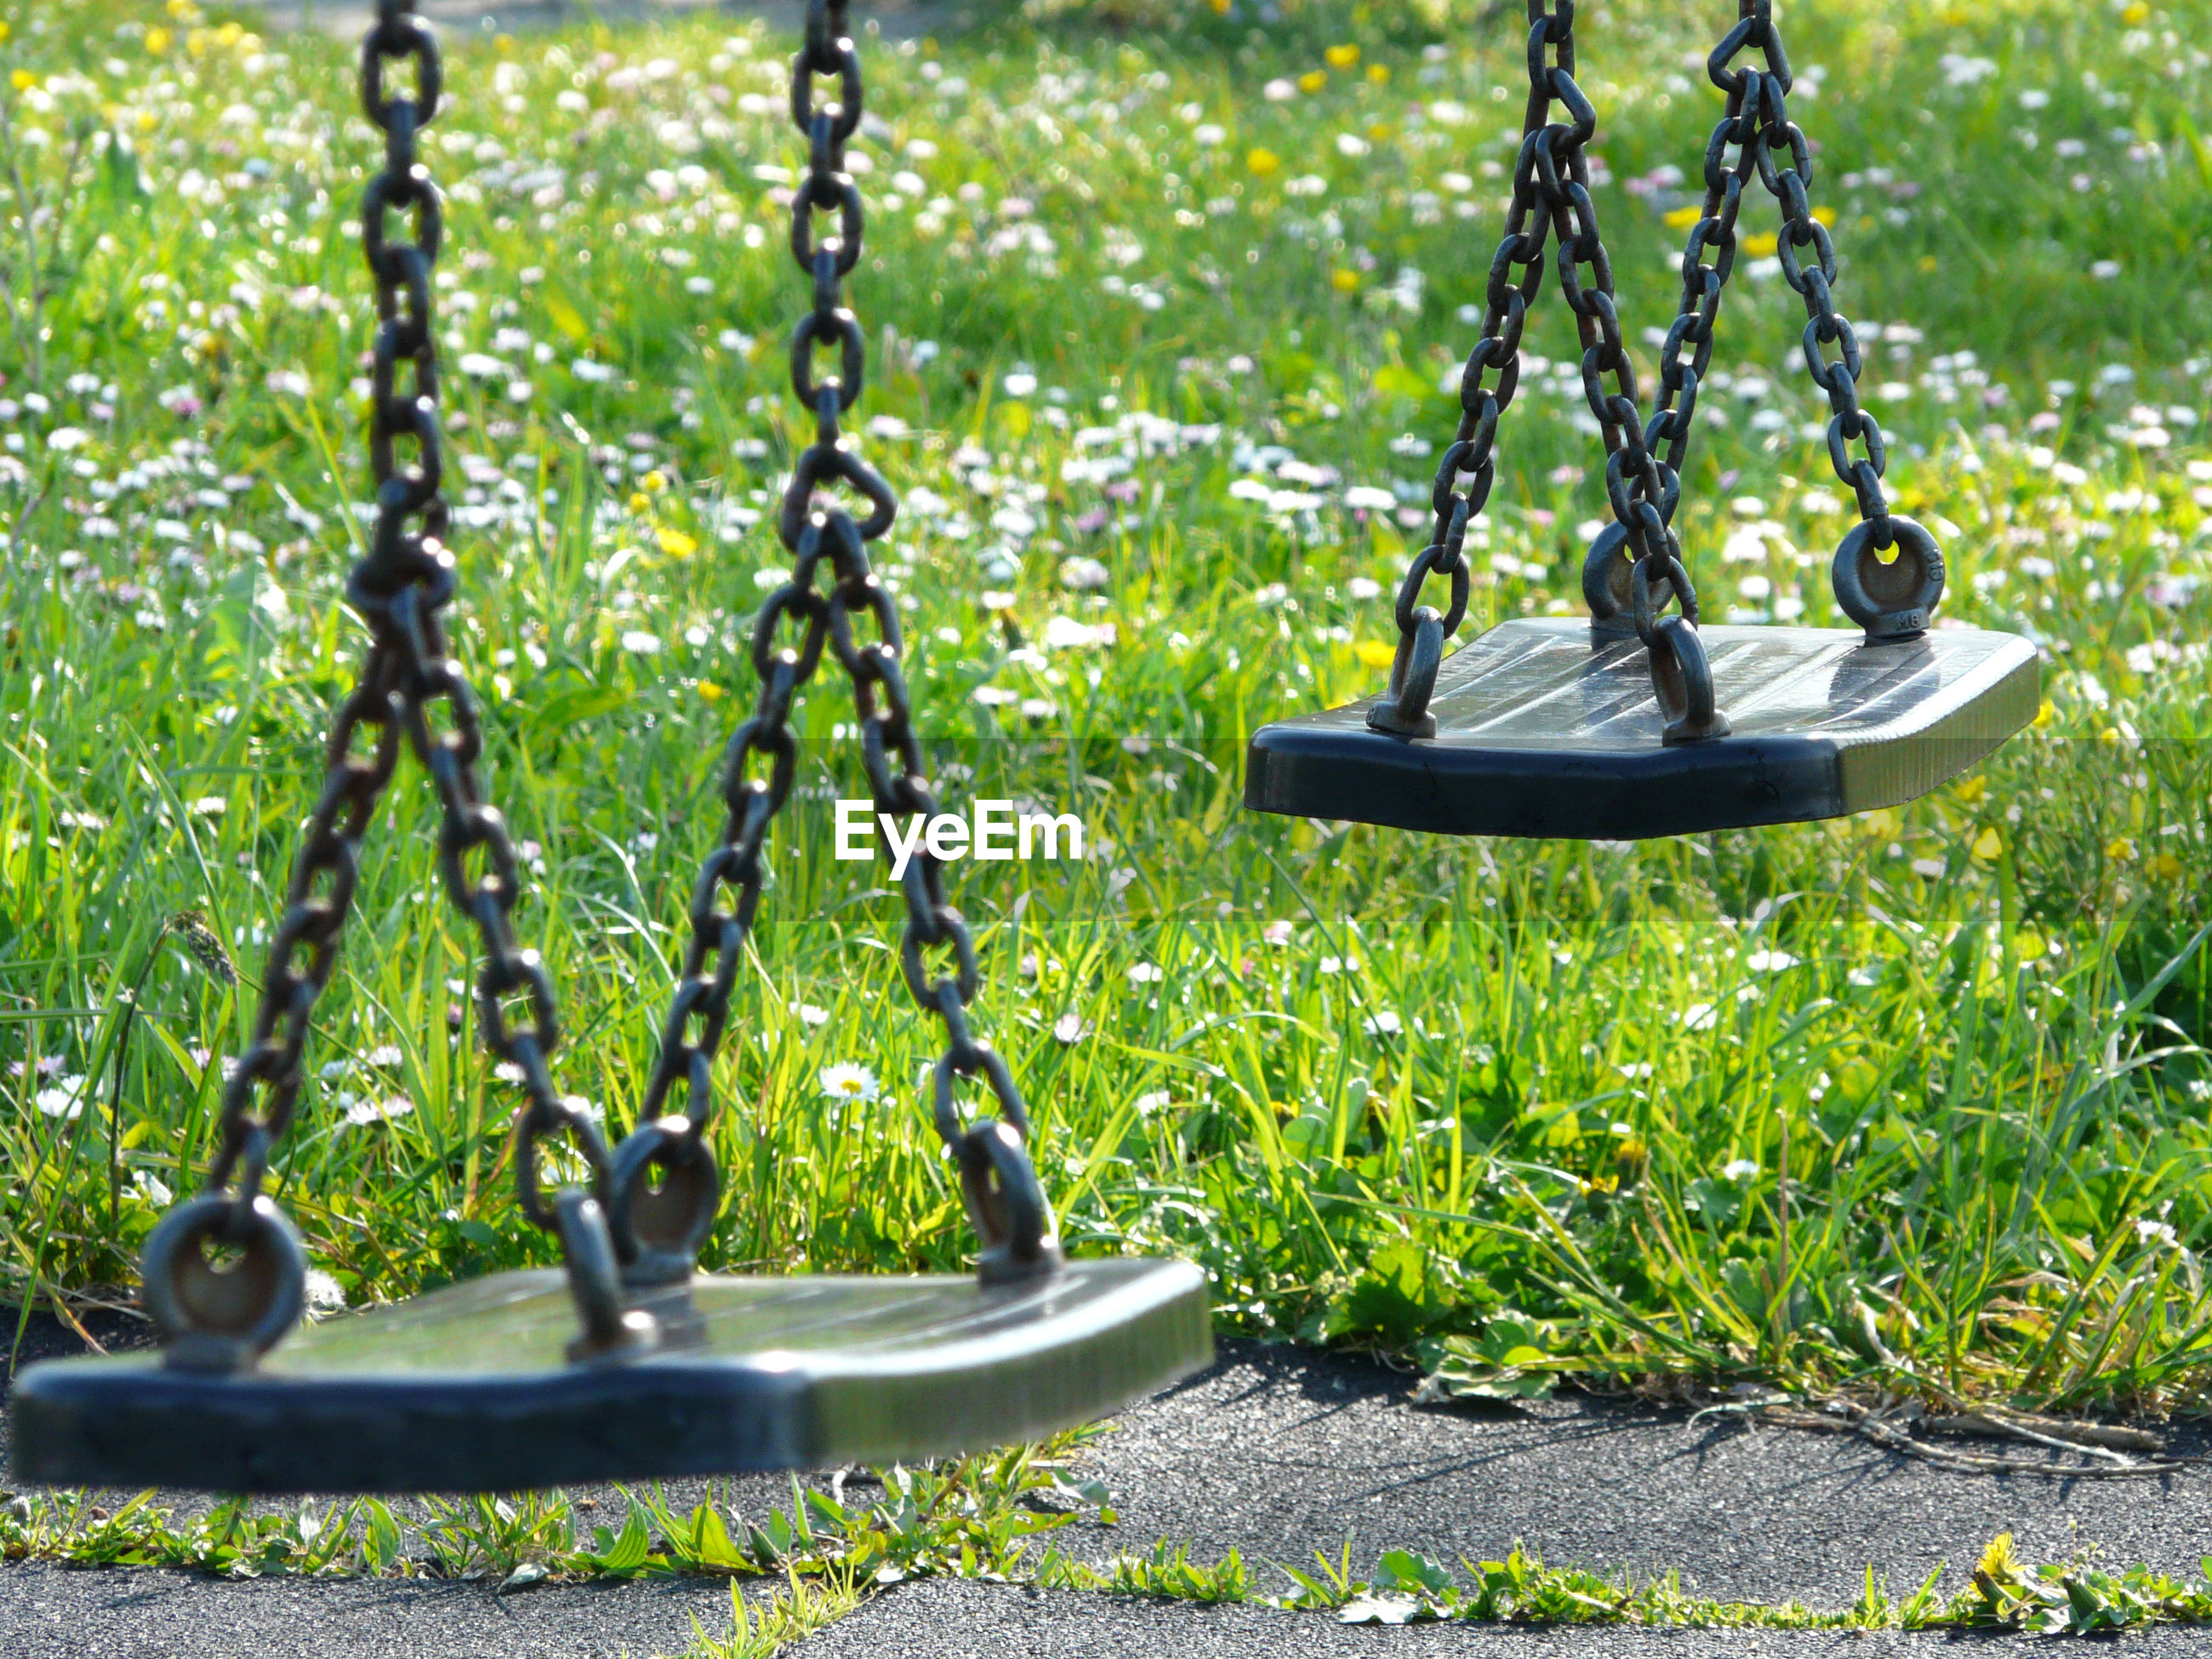 View of swing hanging in park